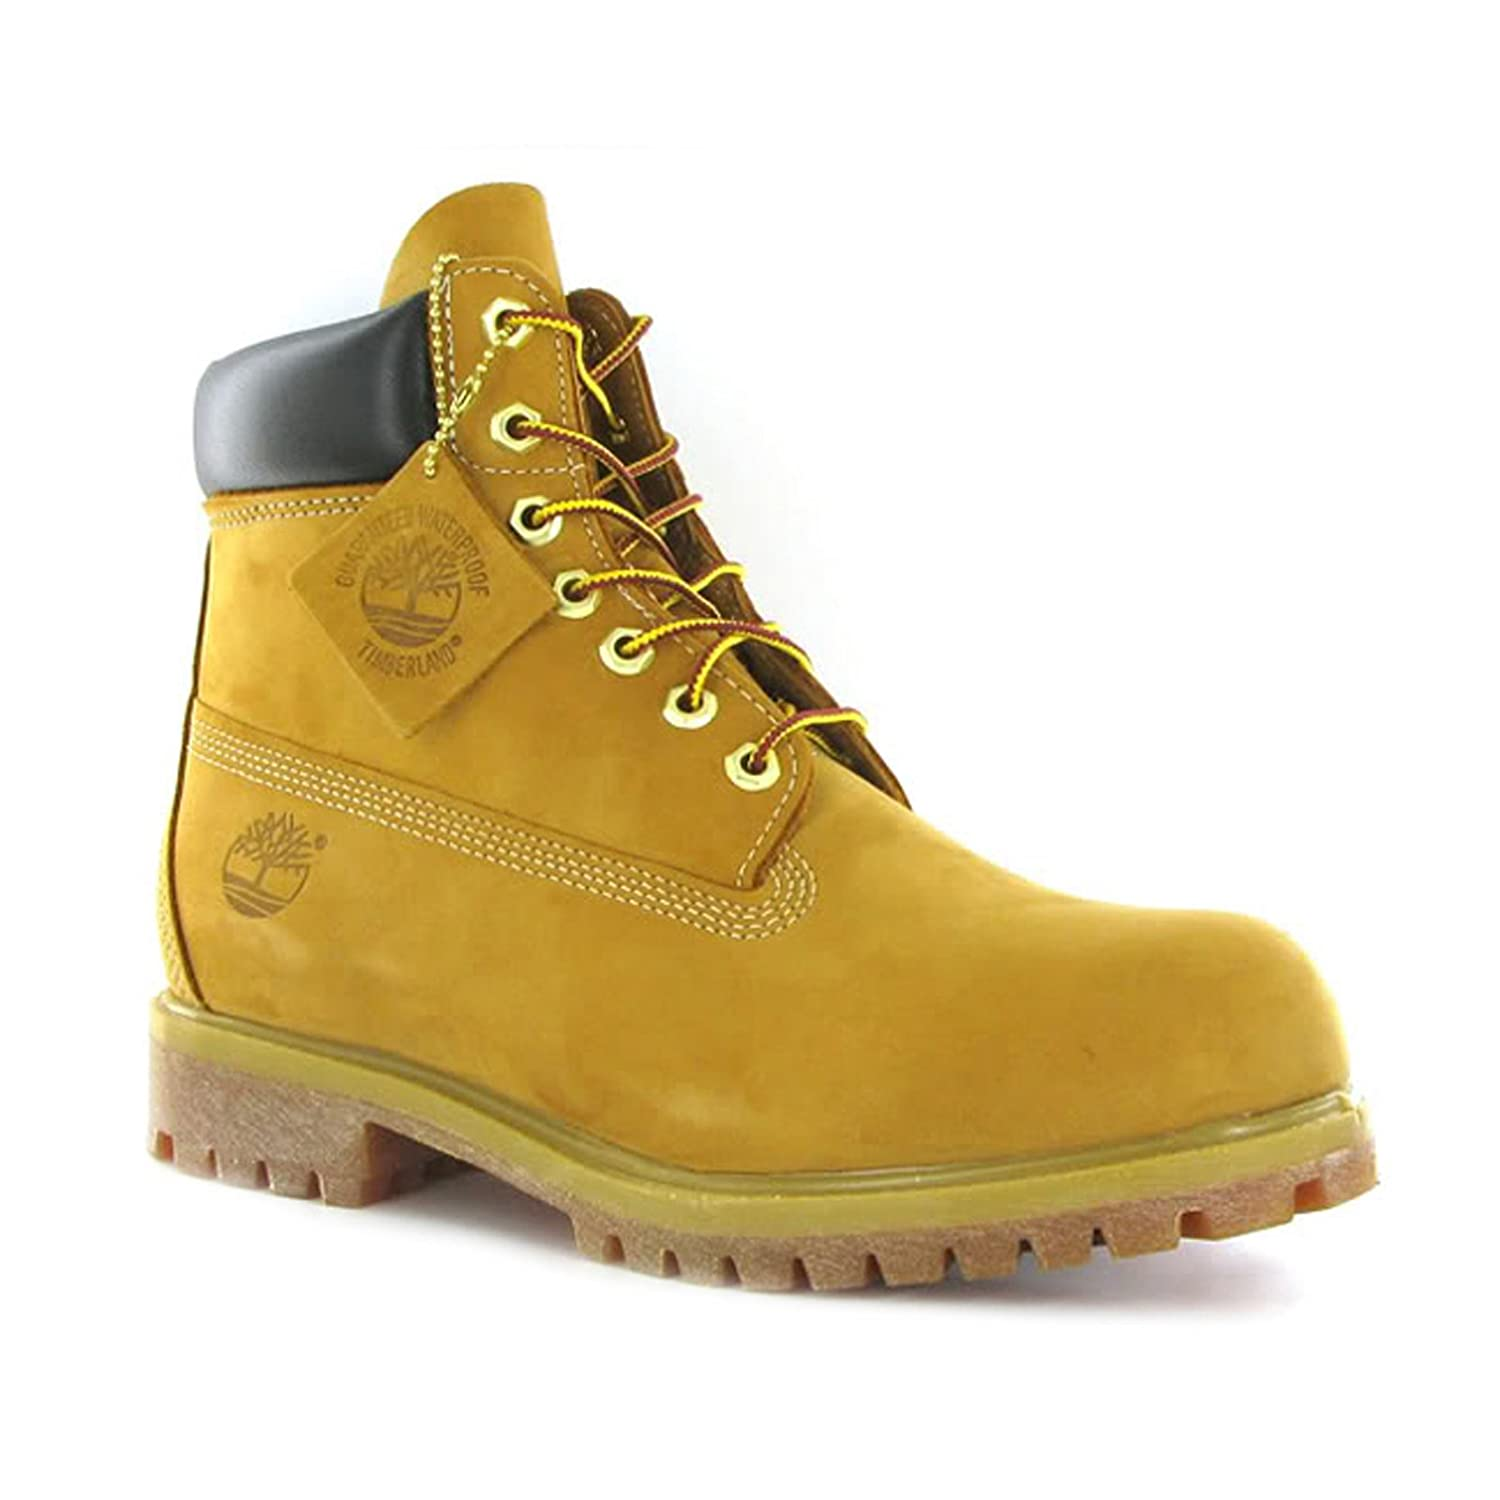 66763aa168c2 Timberland AF 6-Inch Premium Waterproof Wheat Men Boots Size 9 UK   Amazon.co.uk  Shoes   Bags